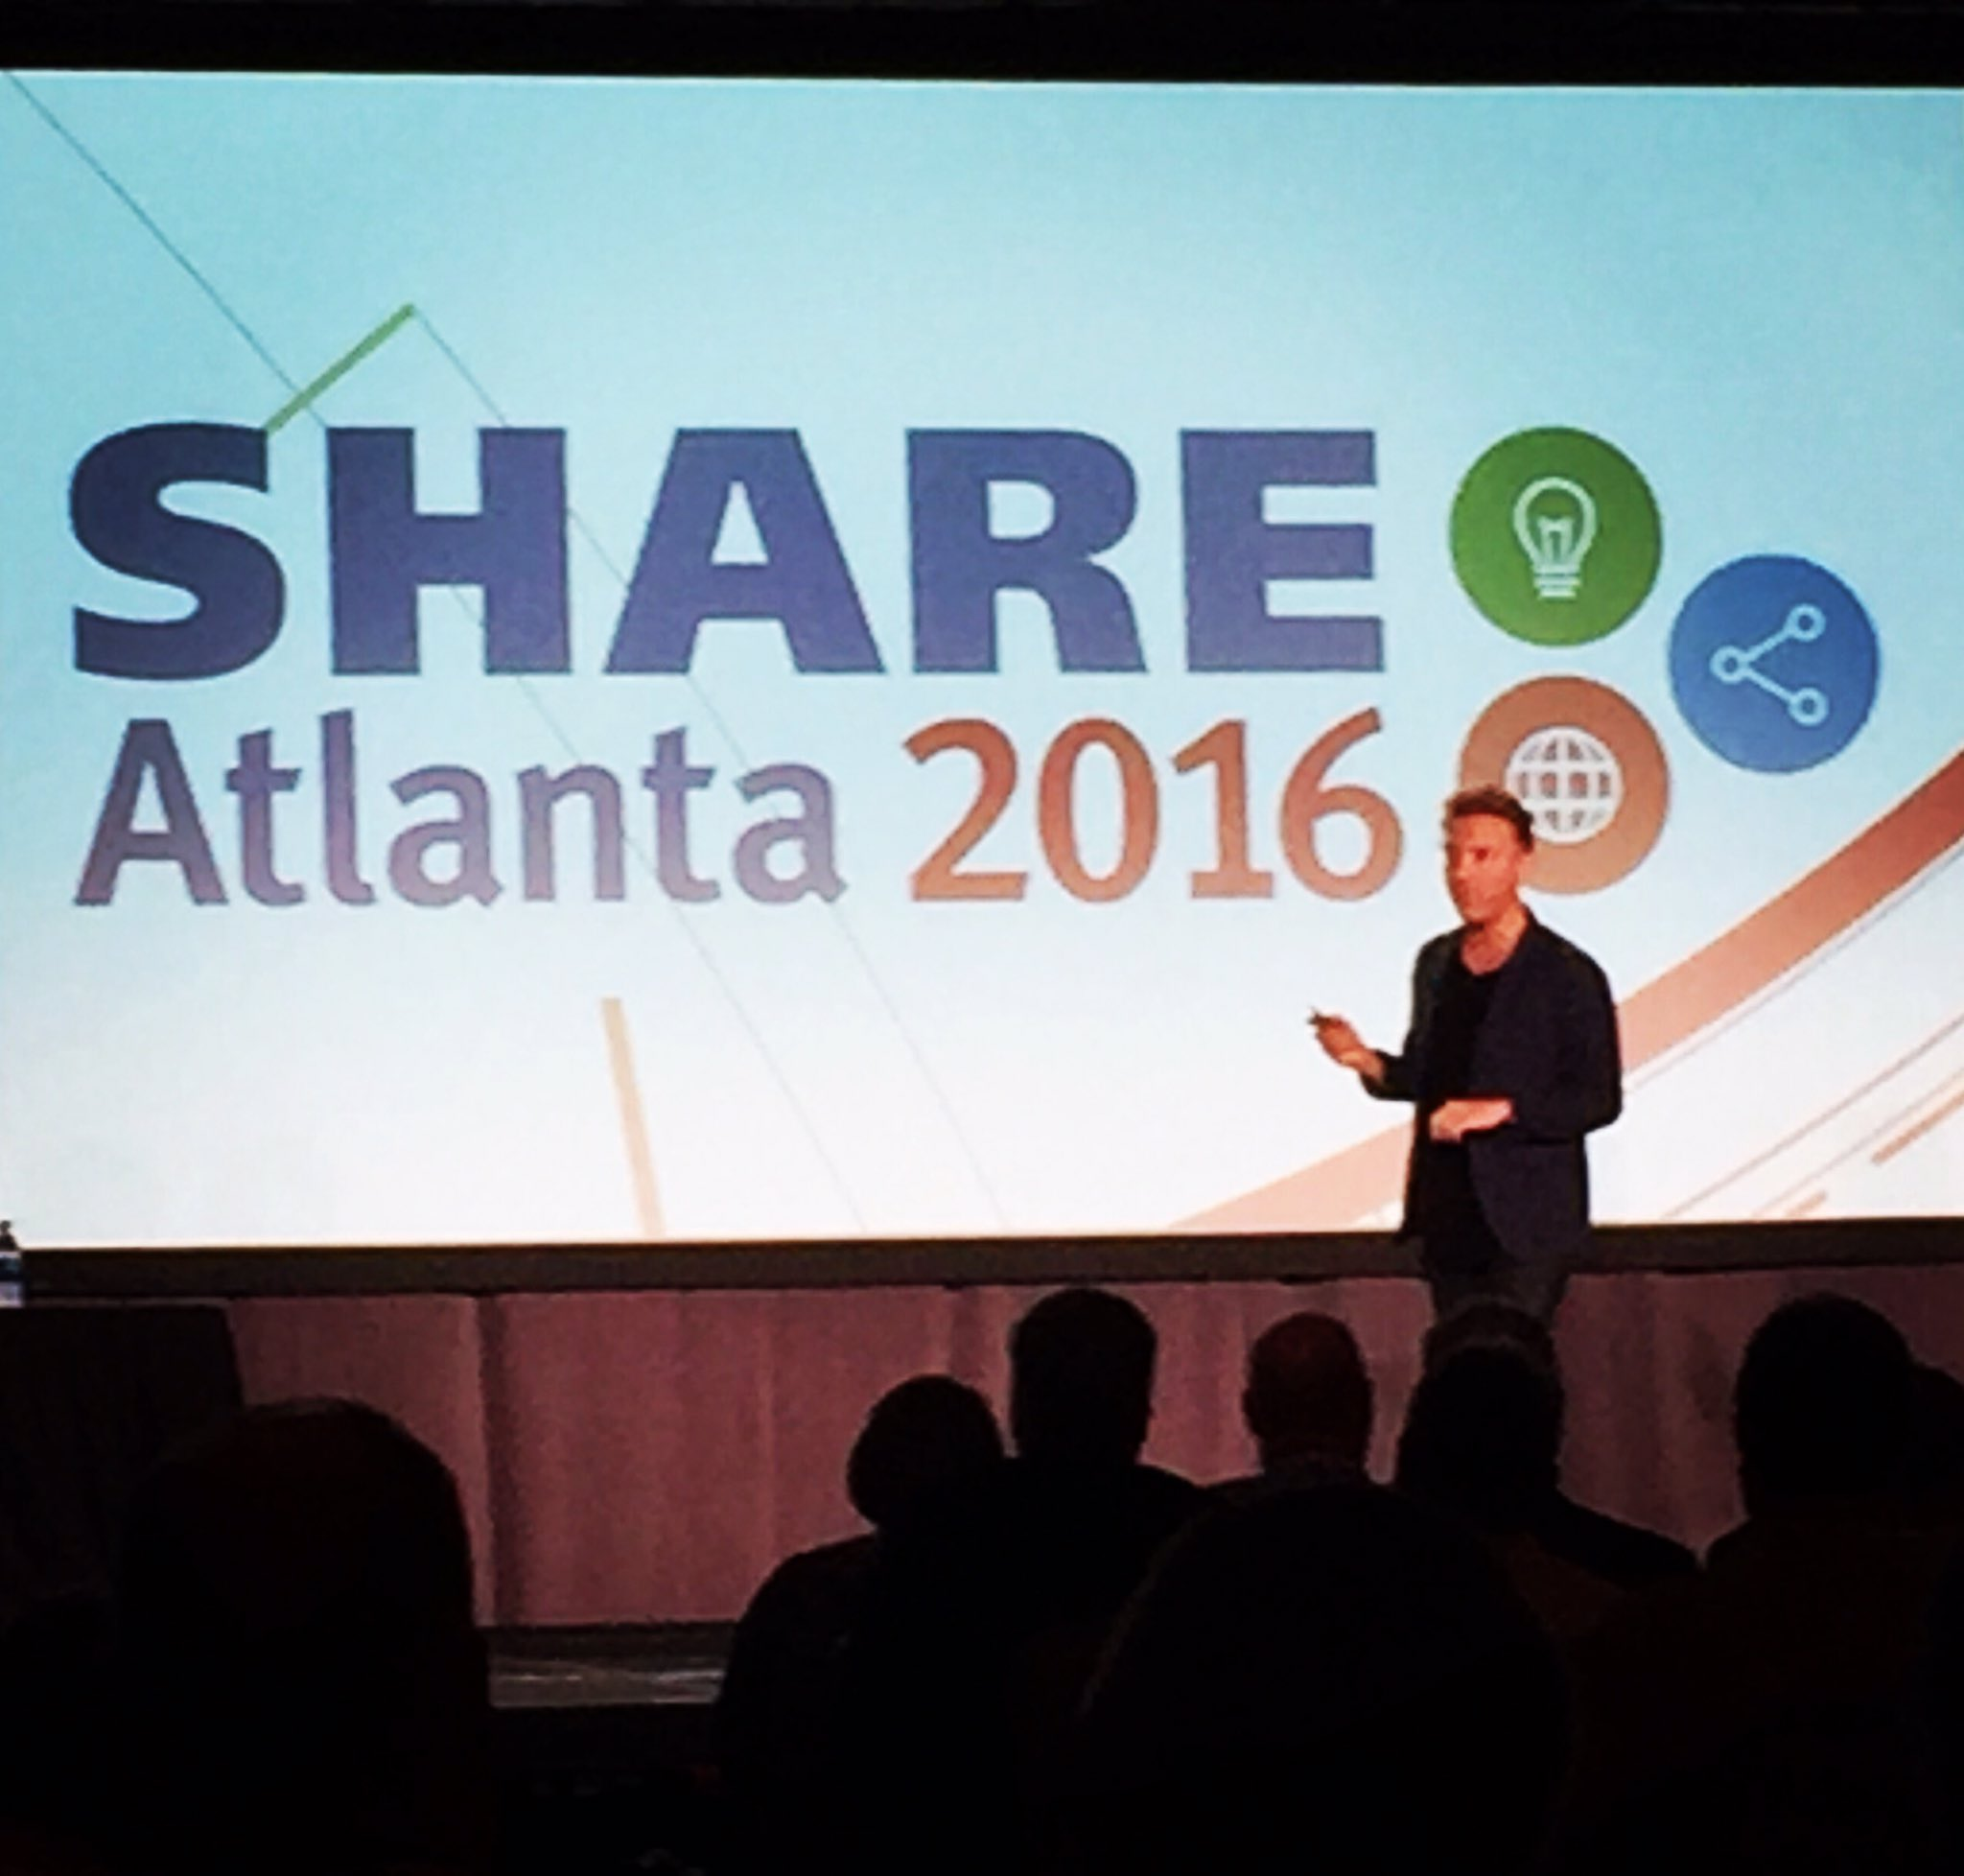 Inspiring #SHAREatl attendees w/ success stories of #SidewaysMoves ~ Shane Snow @contently #LateralThinking @SHAREhq https://t.co/EqNbufuL66